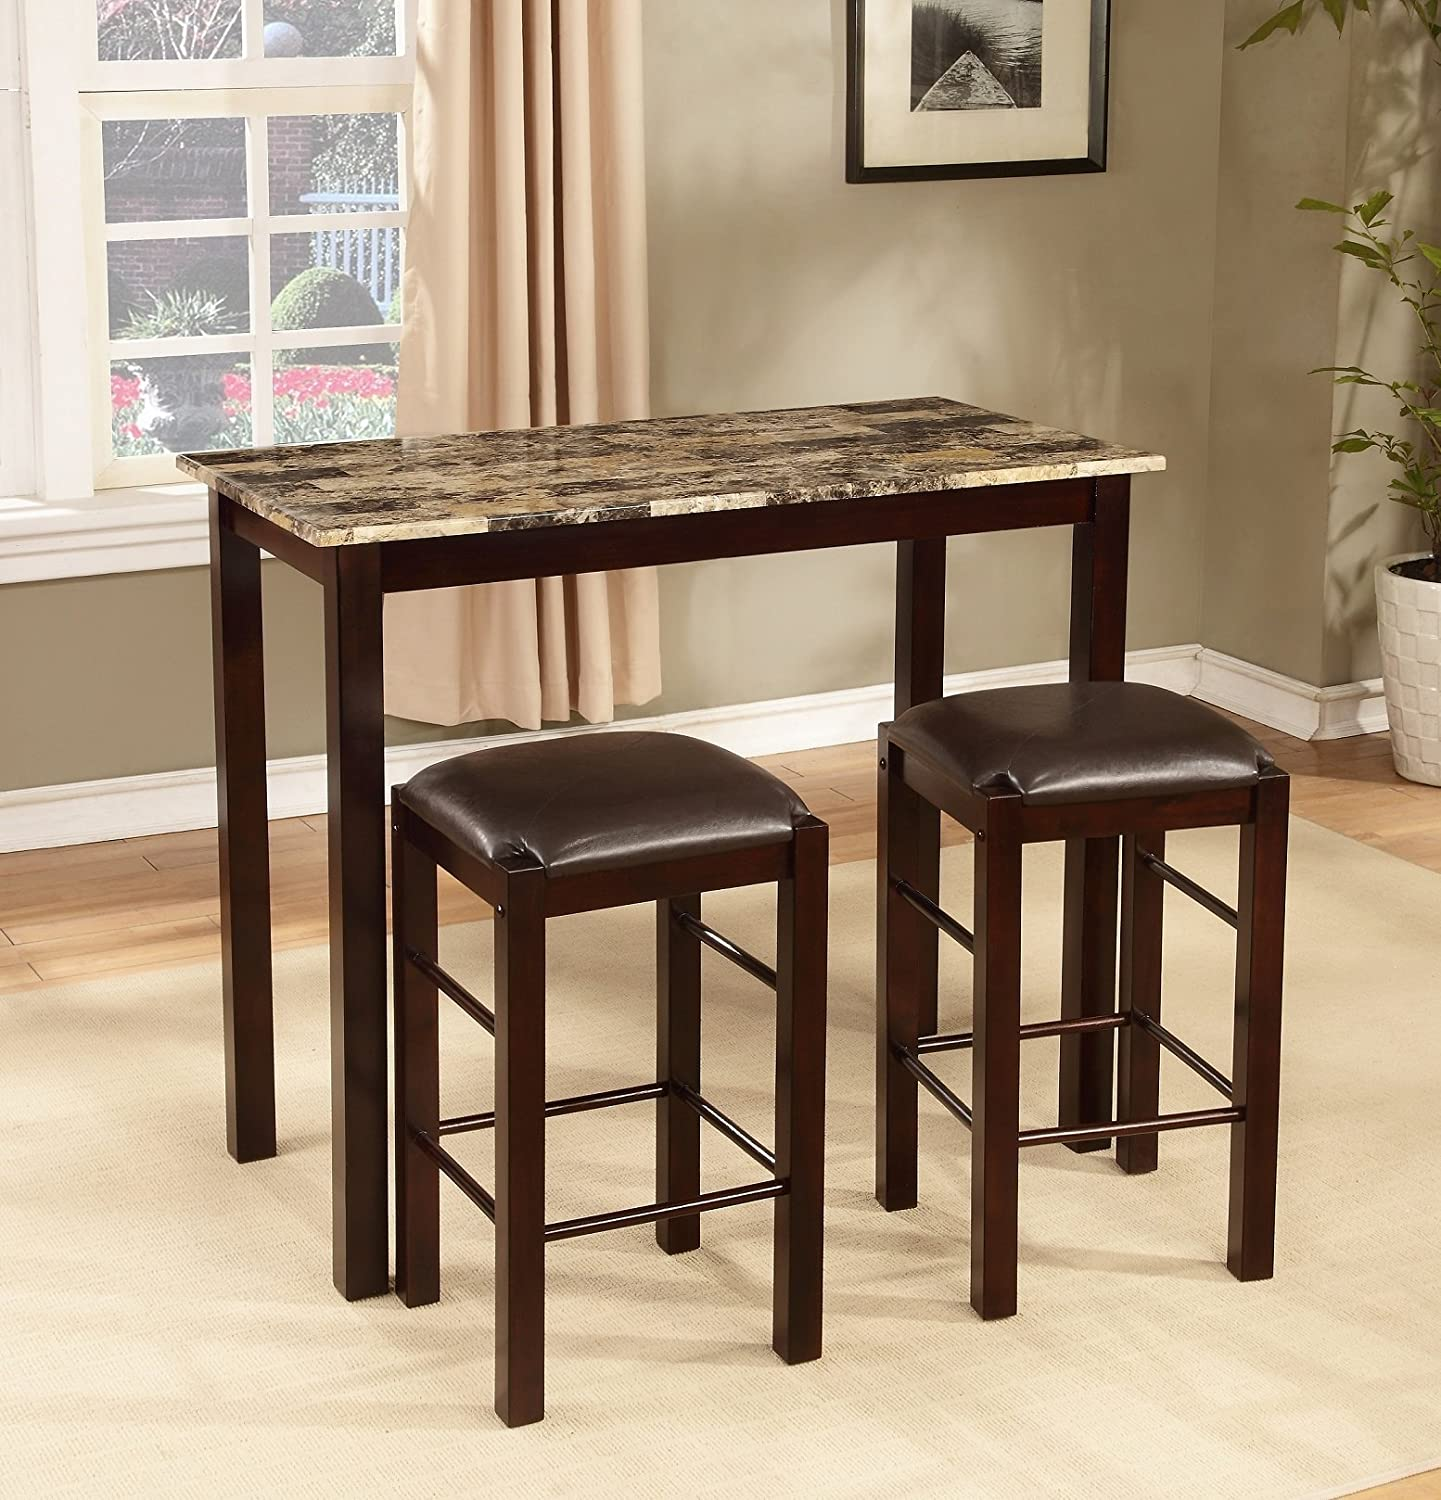 Amazon.com - Roundhill Furniture Brando 3-Piece Counter Height Breakfast Set Espresso Finish - Table \u0026 Chair Sets & Amazon.com - Roundhill Furniture Brando 3-Piece Counter Height ...